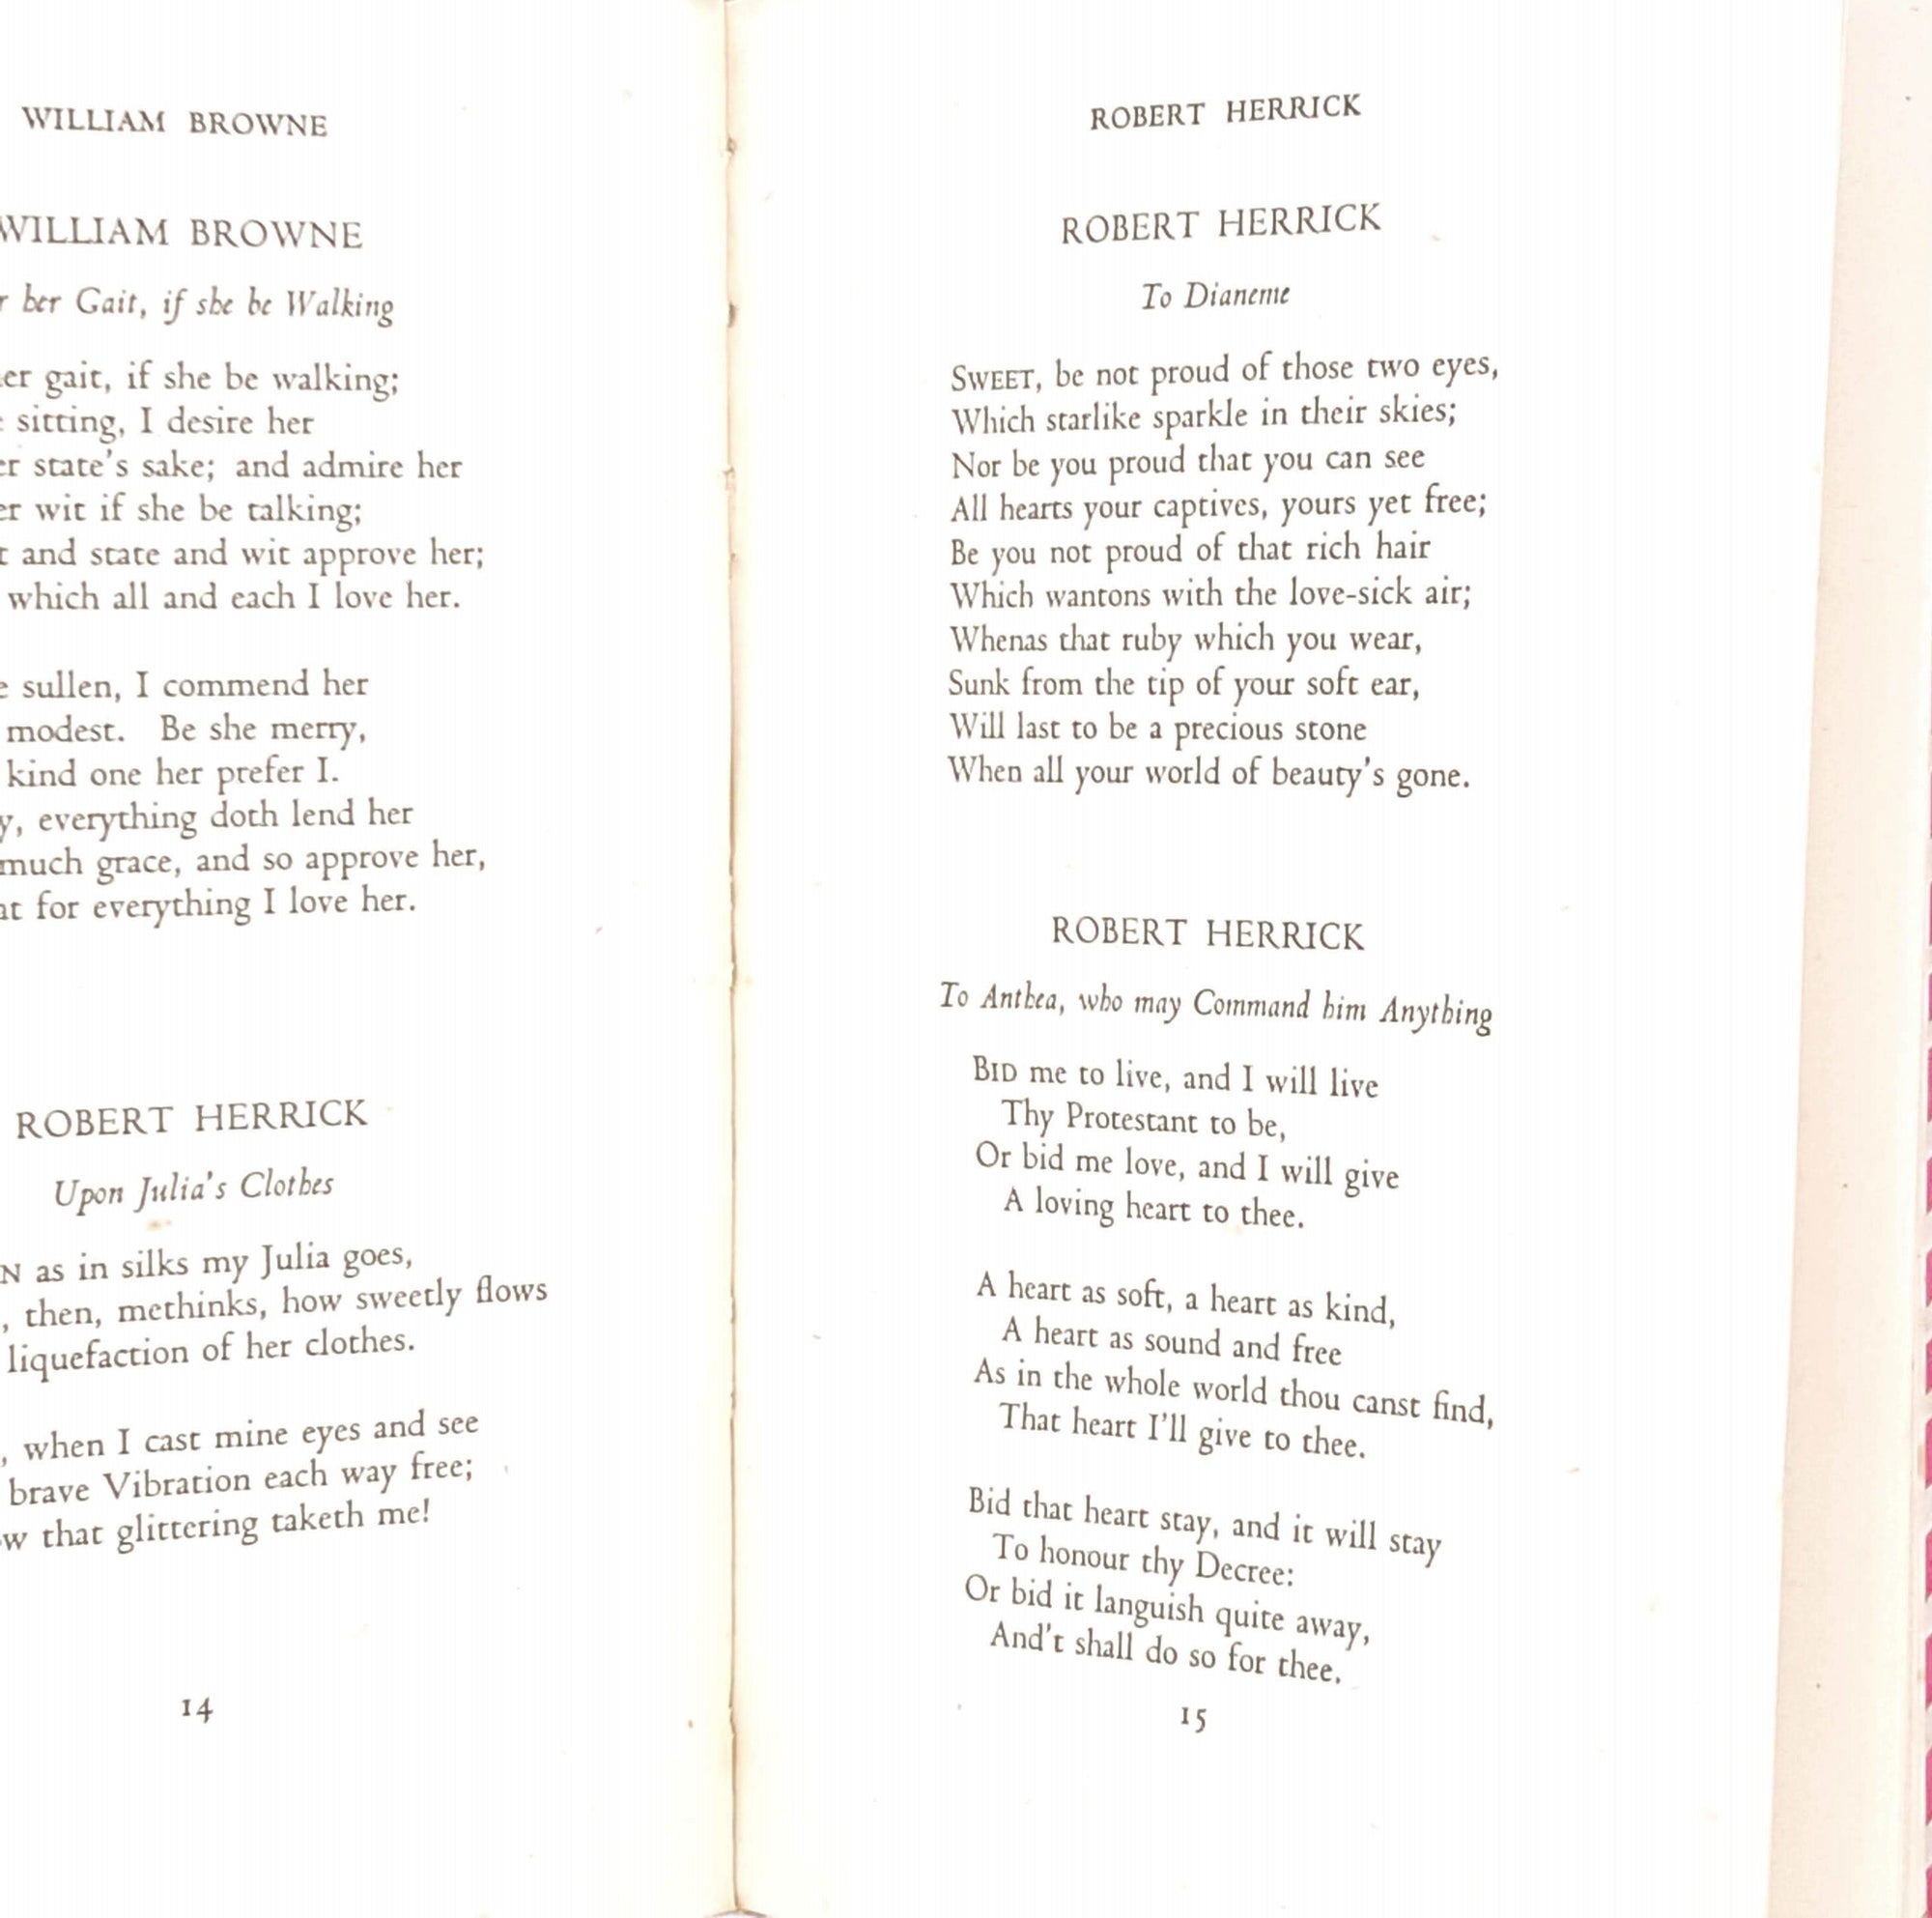 other-17th-century-love-poems-1941-old-zodiac-books-books-chatto-and-windus-country-house-library-classic-england-antique-patterned-cavalier-lyrics-decorative-vintage-thrift-poetry-